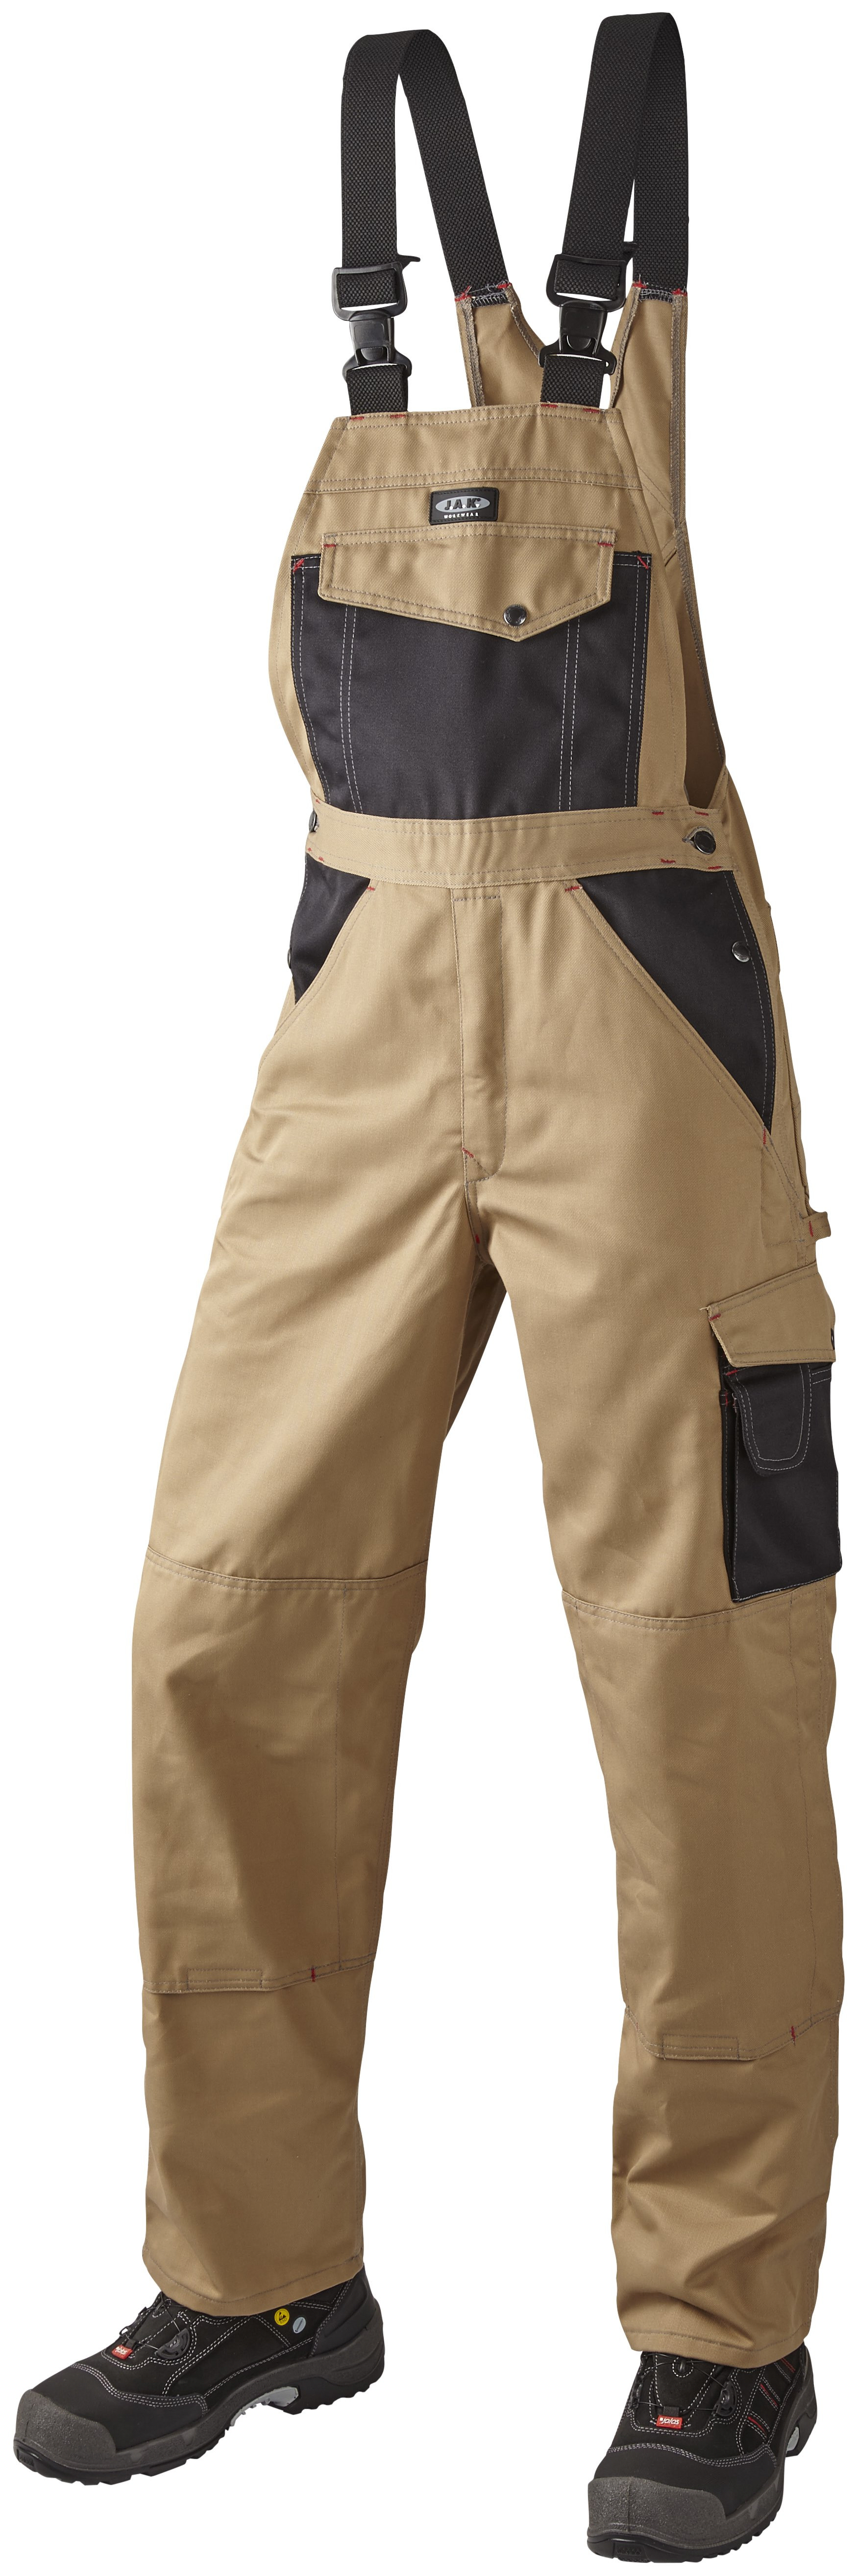 OUTLET - Arbejds Overall, 9207 - Khaki/Sort